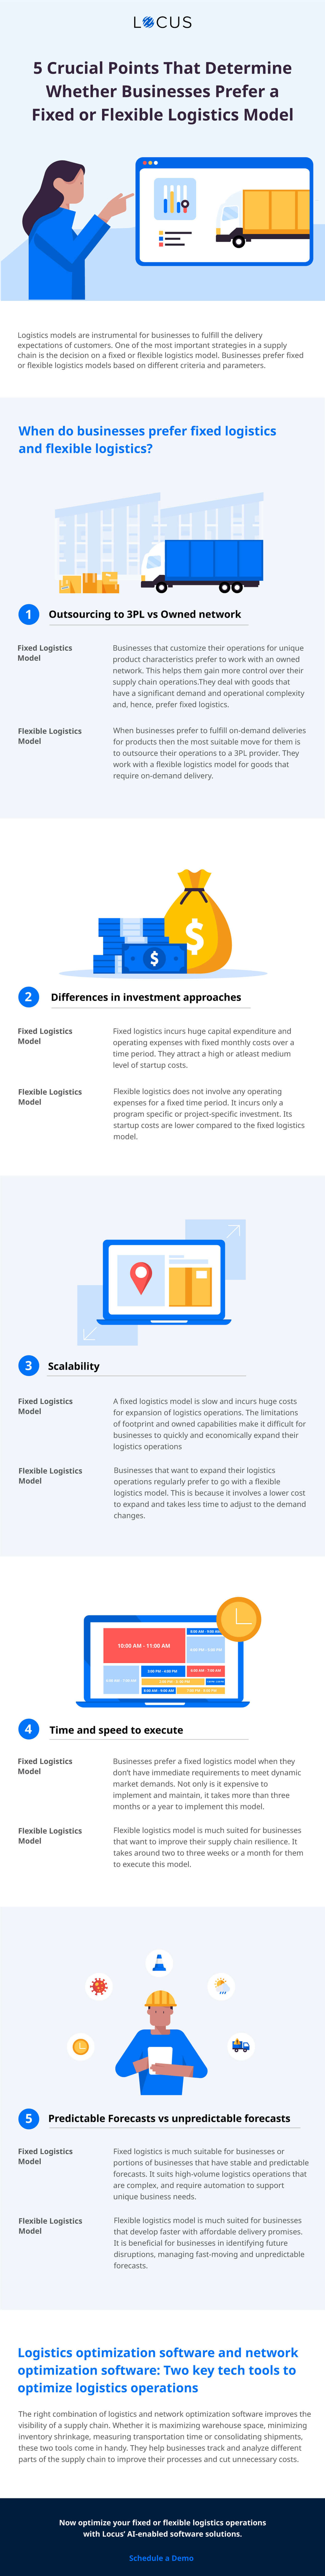 Why Businesses Prefer Fixed and Flexible Logistics (Infographic)   Locus